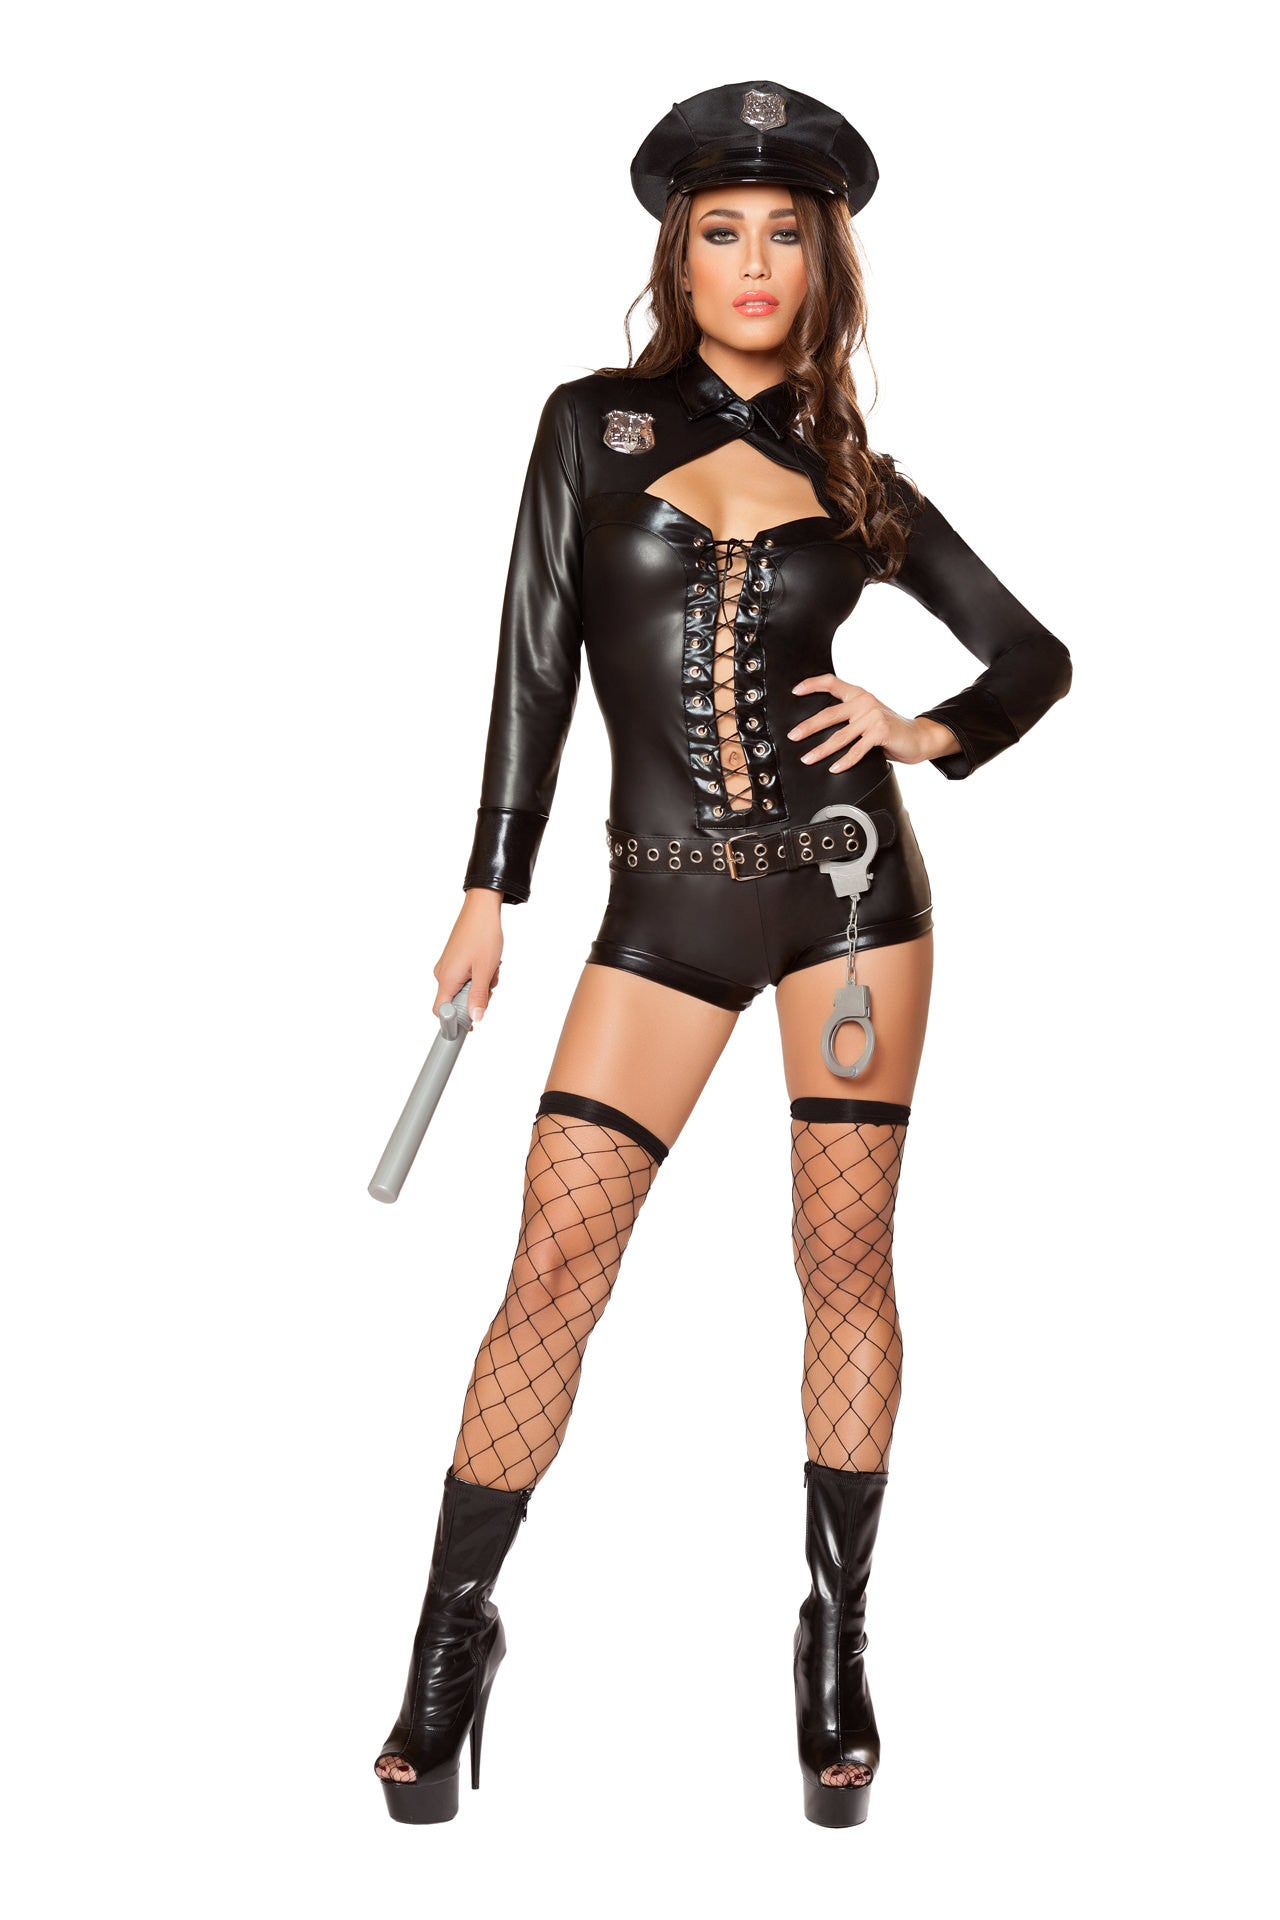 10064 - 6pc Code 4 Police ${description} | Roma Costume and Roma Confidential wholesale manufacturer of Women Apparel bulk world wide wholesale and world wide drop ship services for Adult Halloween Costumes, Sexy and Elegant Lingerie, Rave Clothing, Club wear, and Christmas Costumes. Costumes,Blowout Sale, Roma Costume, Inc., Roma Costume, Roma Confidential, Wholesale clothing, drop ship, drop ship service, Wholesale Lingerie, Wholesale Adult Halloween Costumes, Rave Clothing, EDM Clothing, Festival Wear, Christmas Costumes, Clubwear, Club wear.